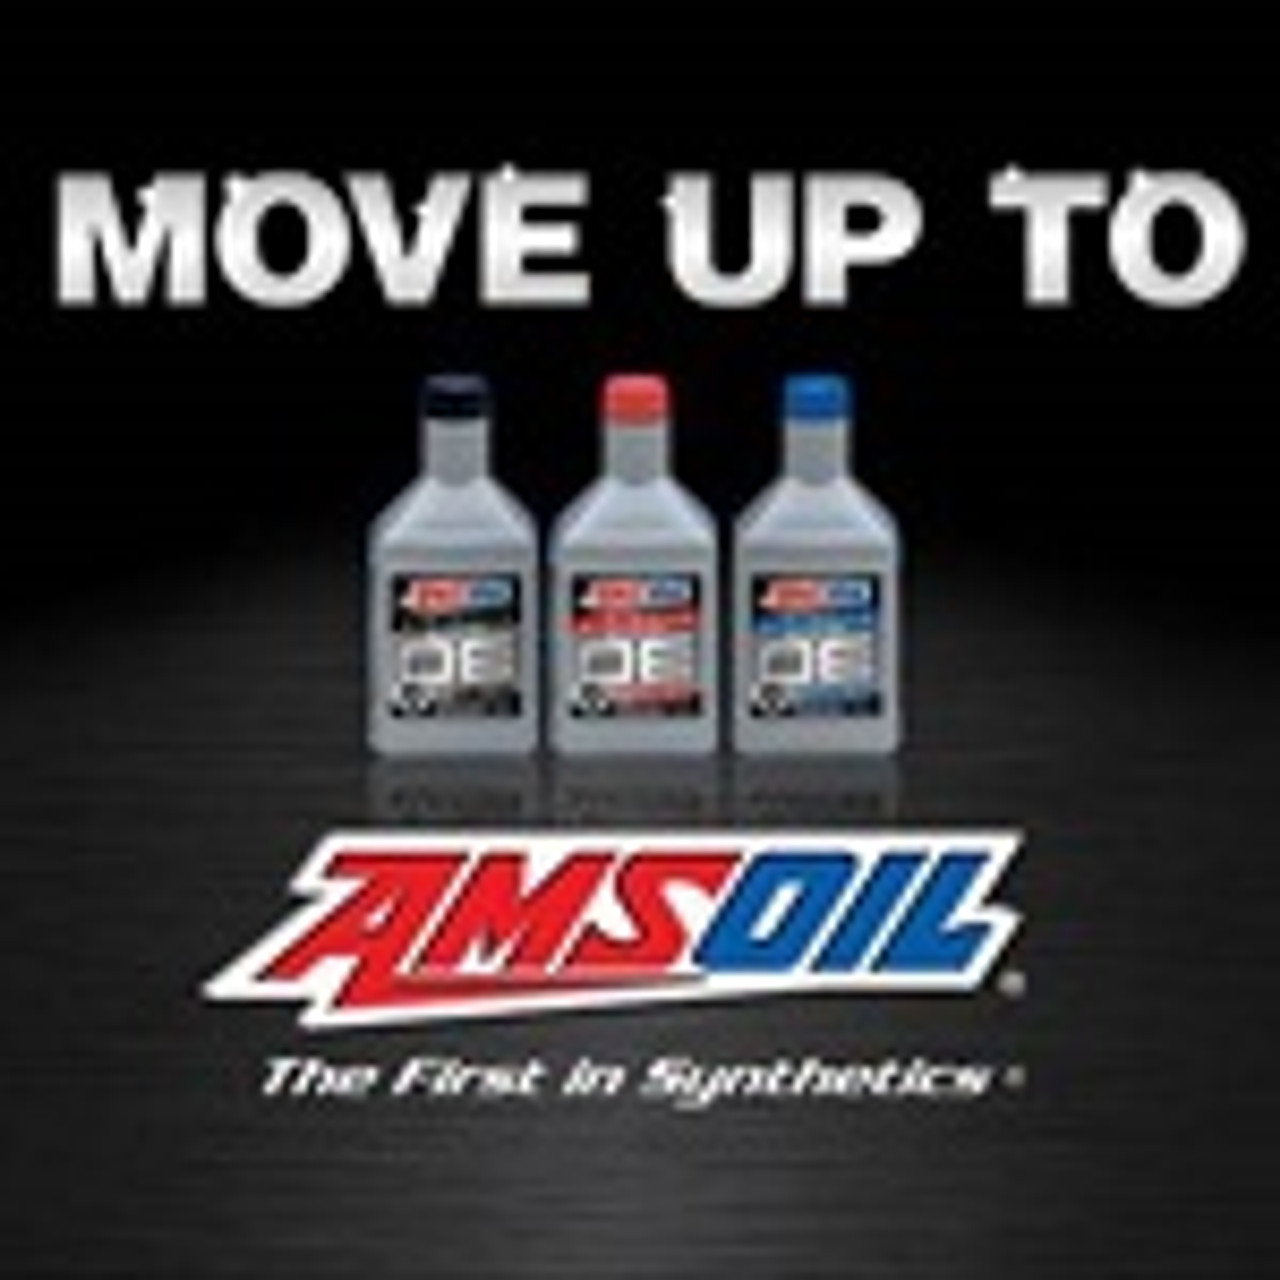 AMSOIL Online Product Application Guide for Motor Oil, Racing Oil, Oil Filters, Air Filter, Grease, Diesel Oil